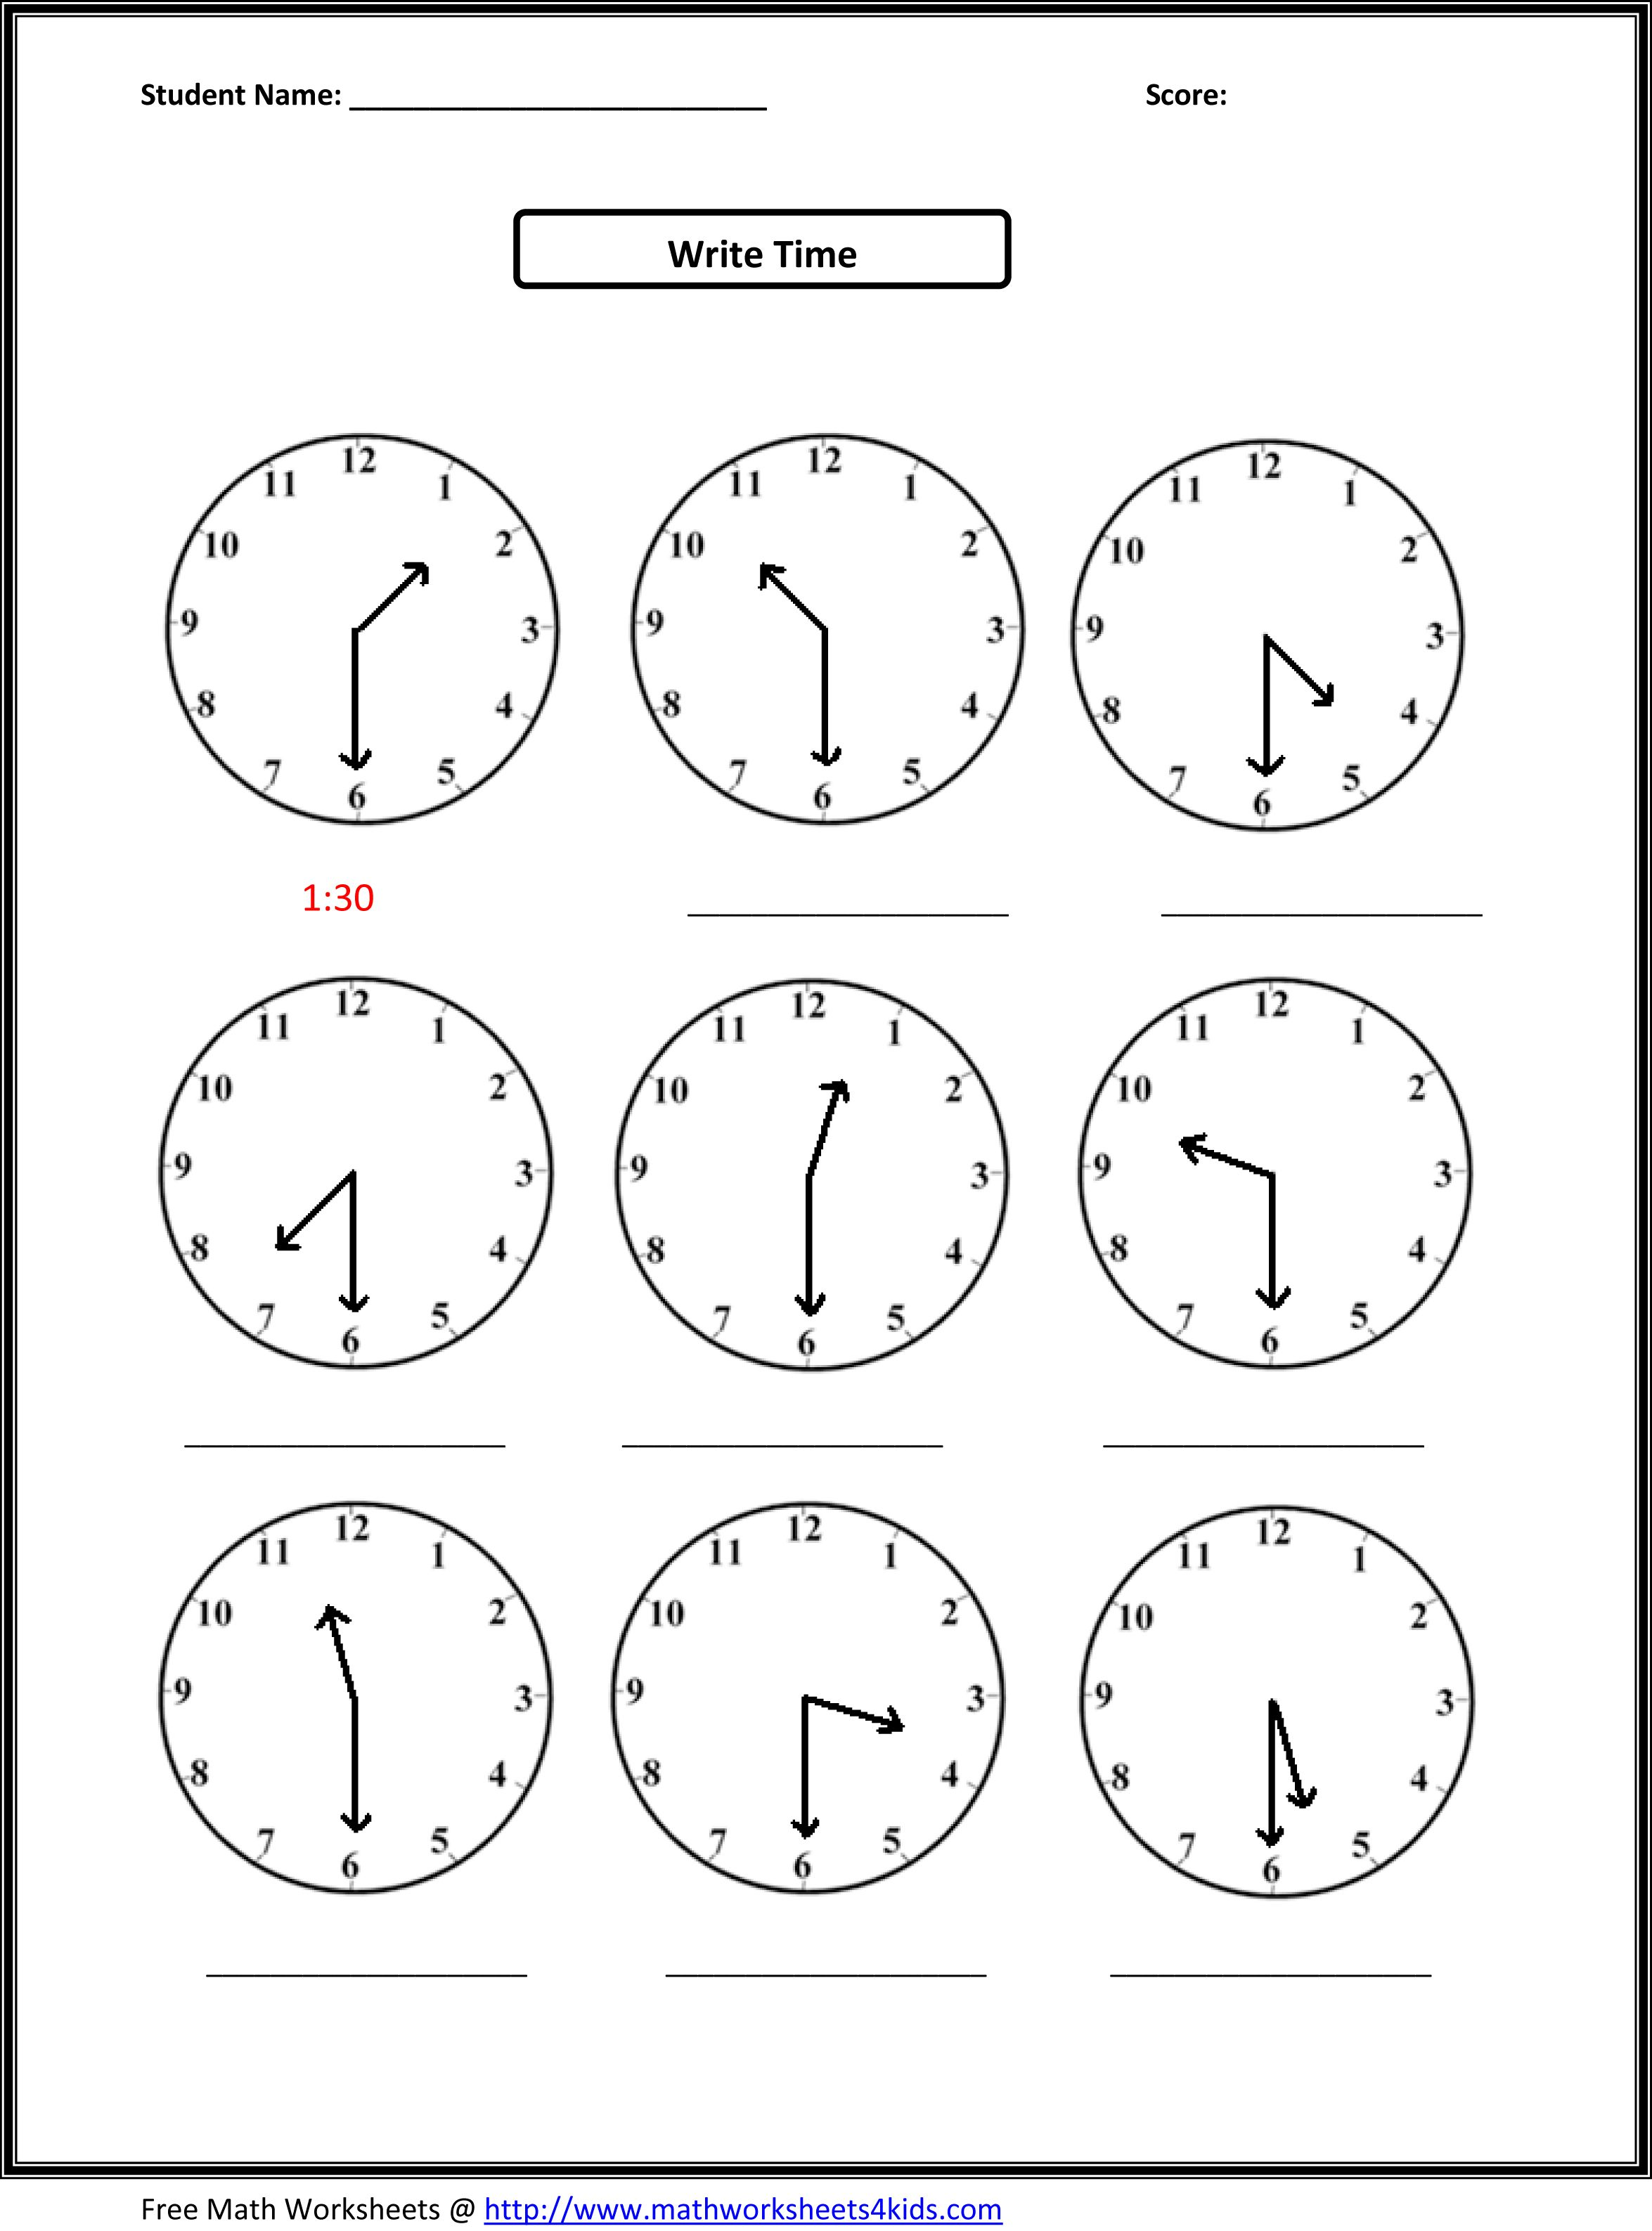 Weirdmailus  Unique Worksheet On Time For Grade   Reocurent With Excellent Free Printable Telling Time Worksheets Nd Grade  Reocurent With Appealing Free Bar Graph Worksheets Also Supporting Details Worksheets In Addition Venn Diagram Word Problems Worksheet And Substance Abuse Triggers Worksheet As Well As Addition Facts To  Worksheets Additionally Adding Doubles Worksheets From Reocurentcom With Weirdmailus  Excellent Worksheet On Time For Grade   Reocurent With Appealing Free Printable Telling Time Worksheets Nd Grade  Reocurent And Unique Free Bar Graph Worksheets Also Supporting Details Worksheets In Addition Venn Diagram Word Problems Worksheet From Reocurentcom